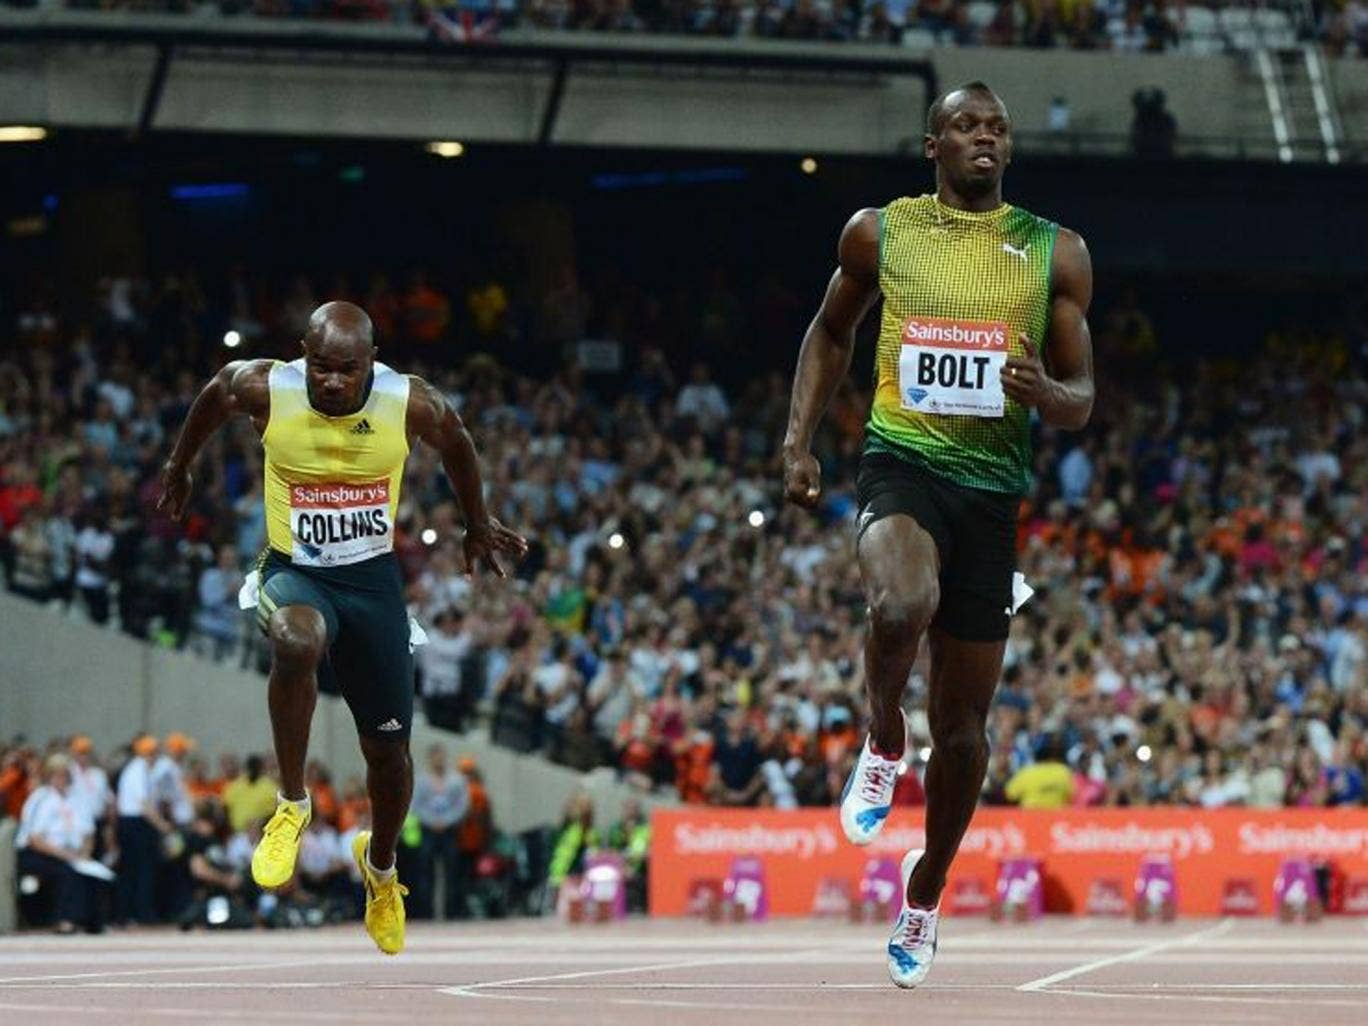 Usain Bolt crosses the line first ahead of Kim Collins